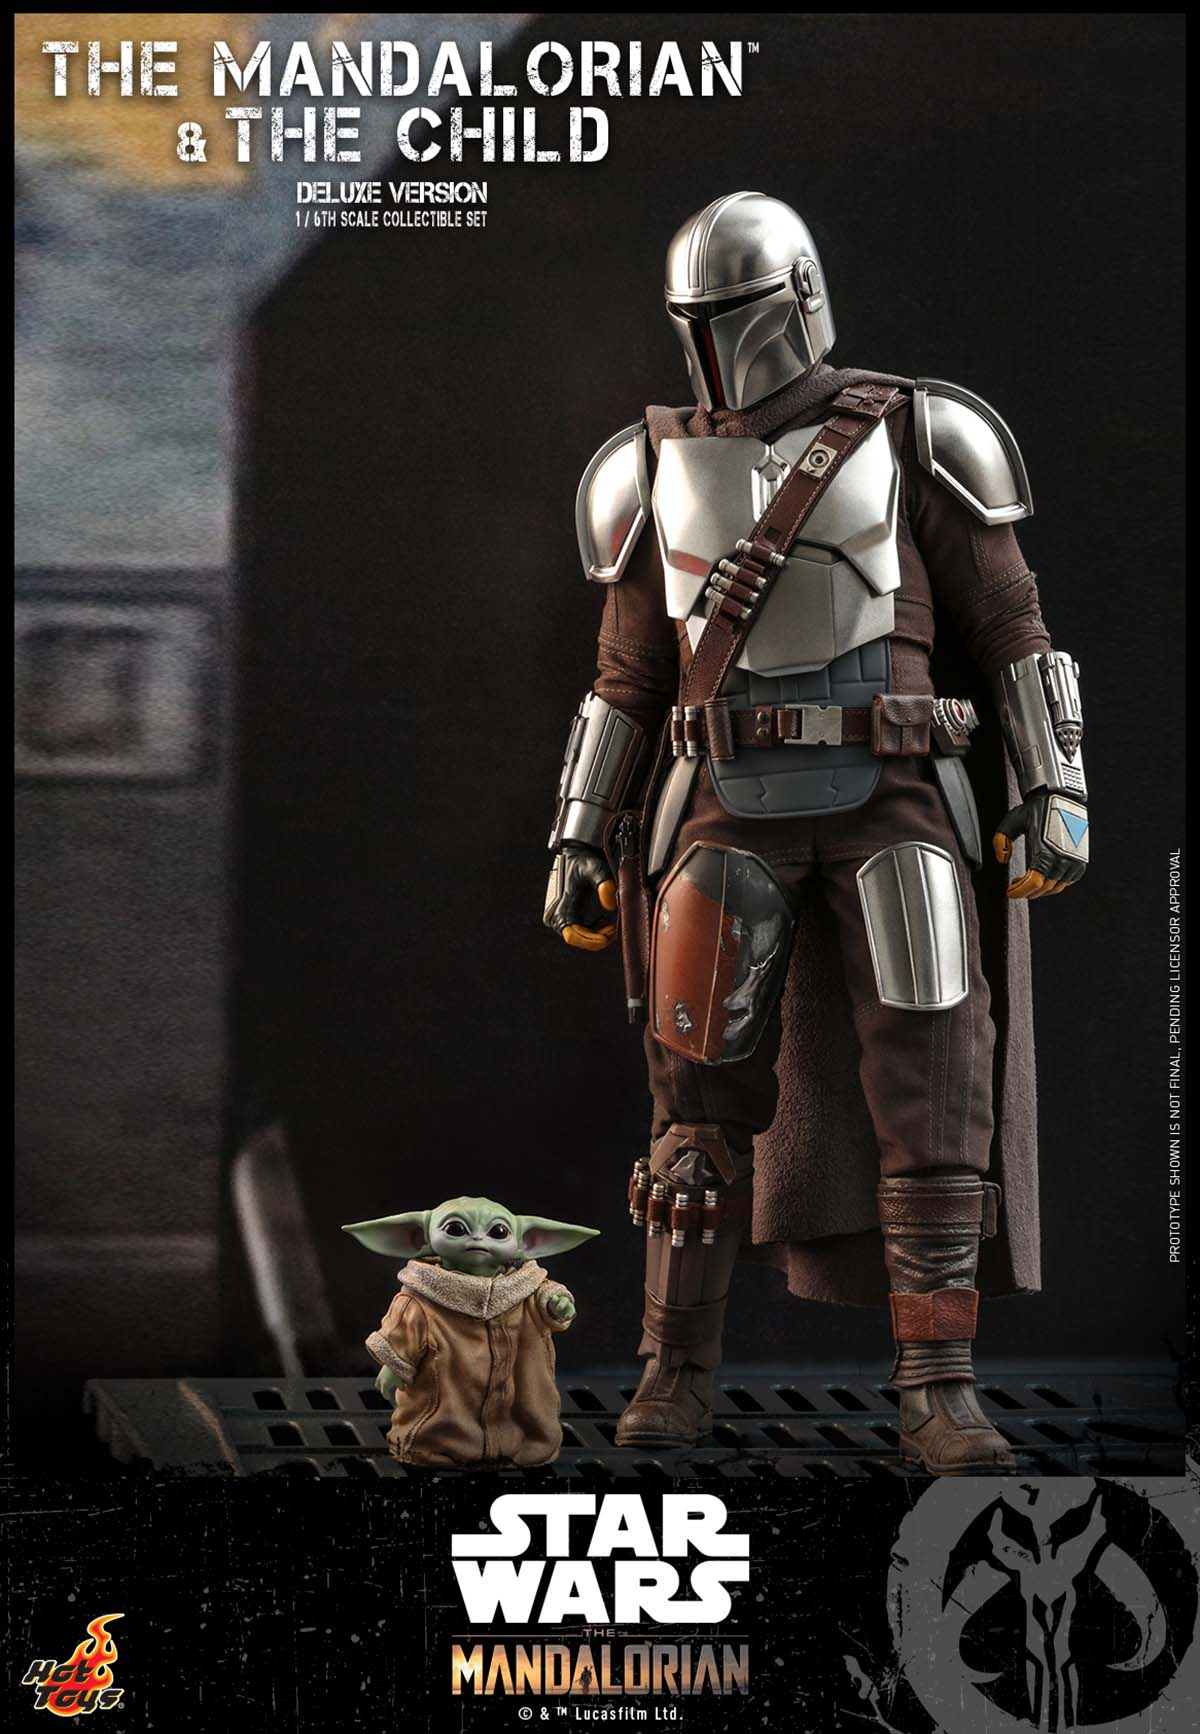 hot-toys-stm-mandalorian-and-child-collectible-set-deluxe_pr3